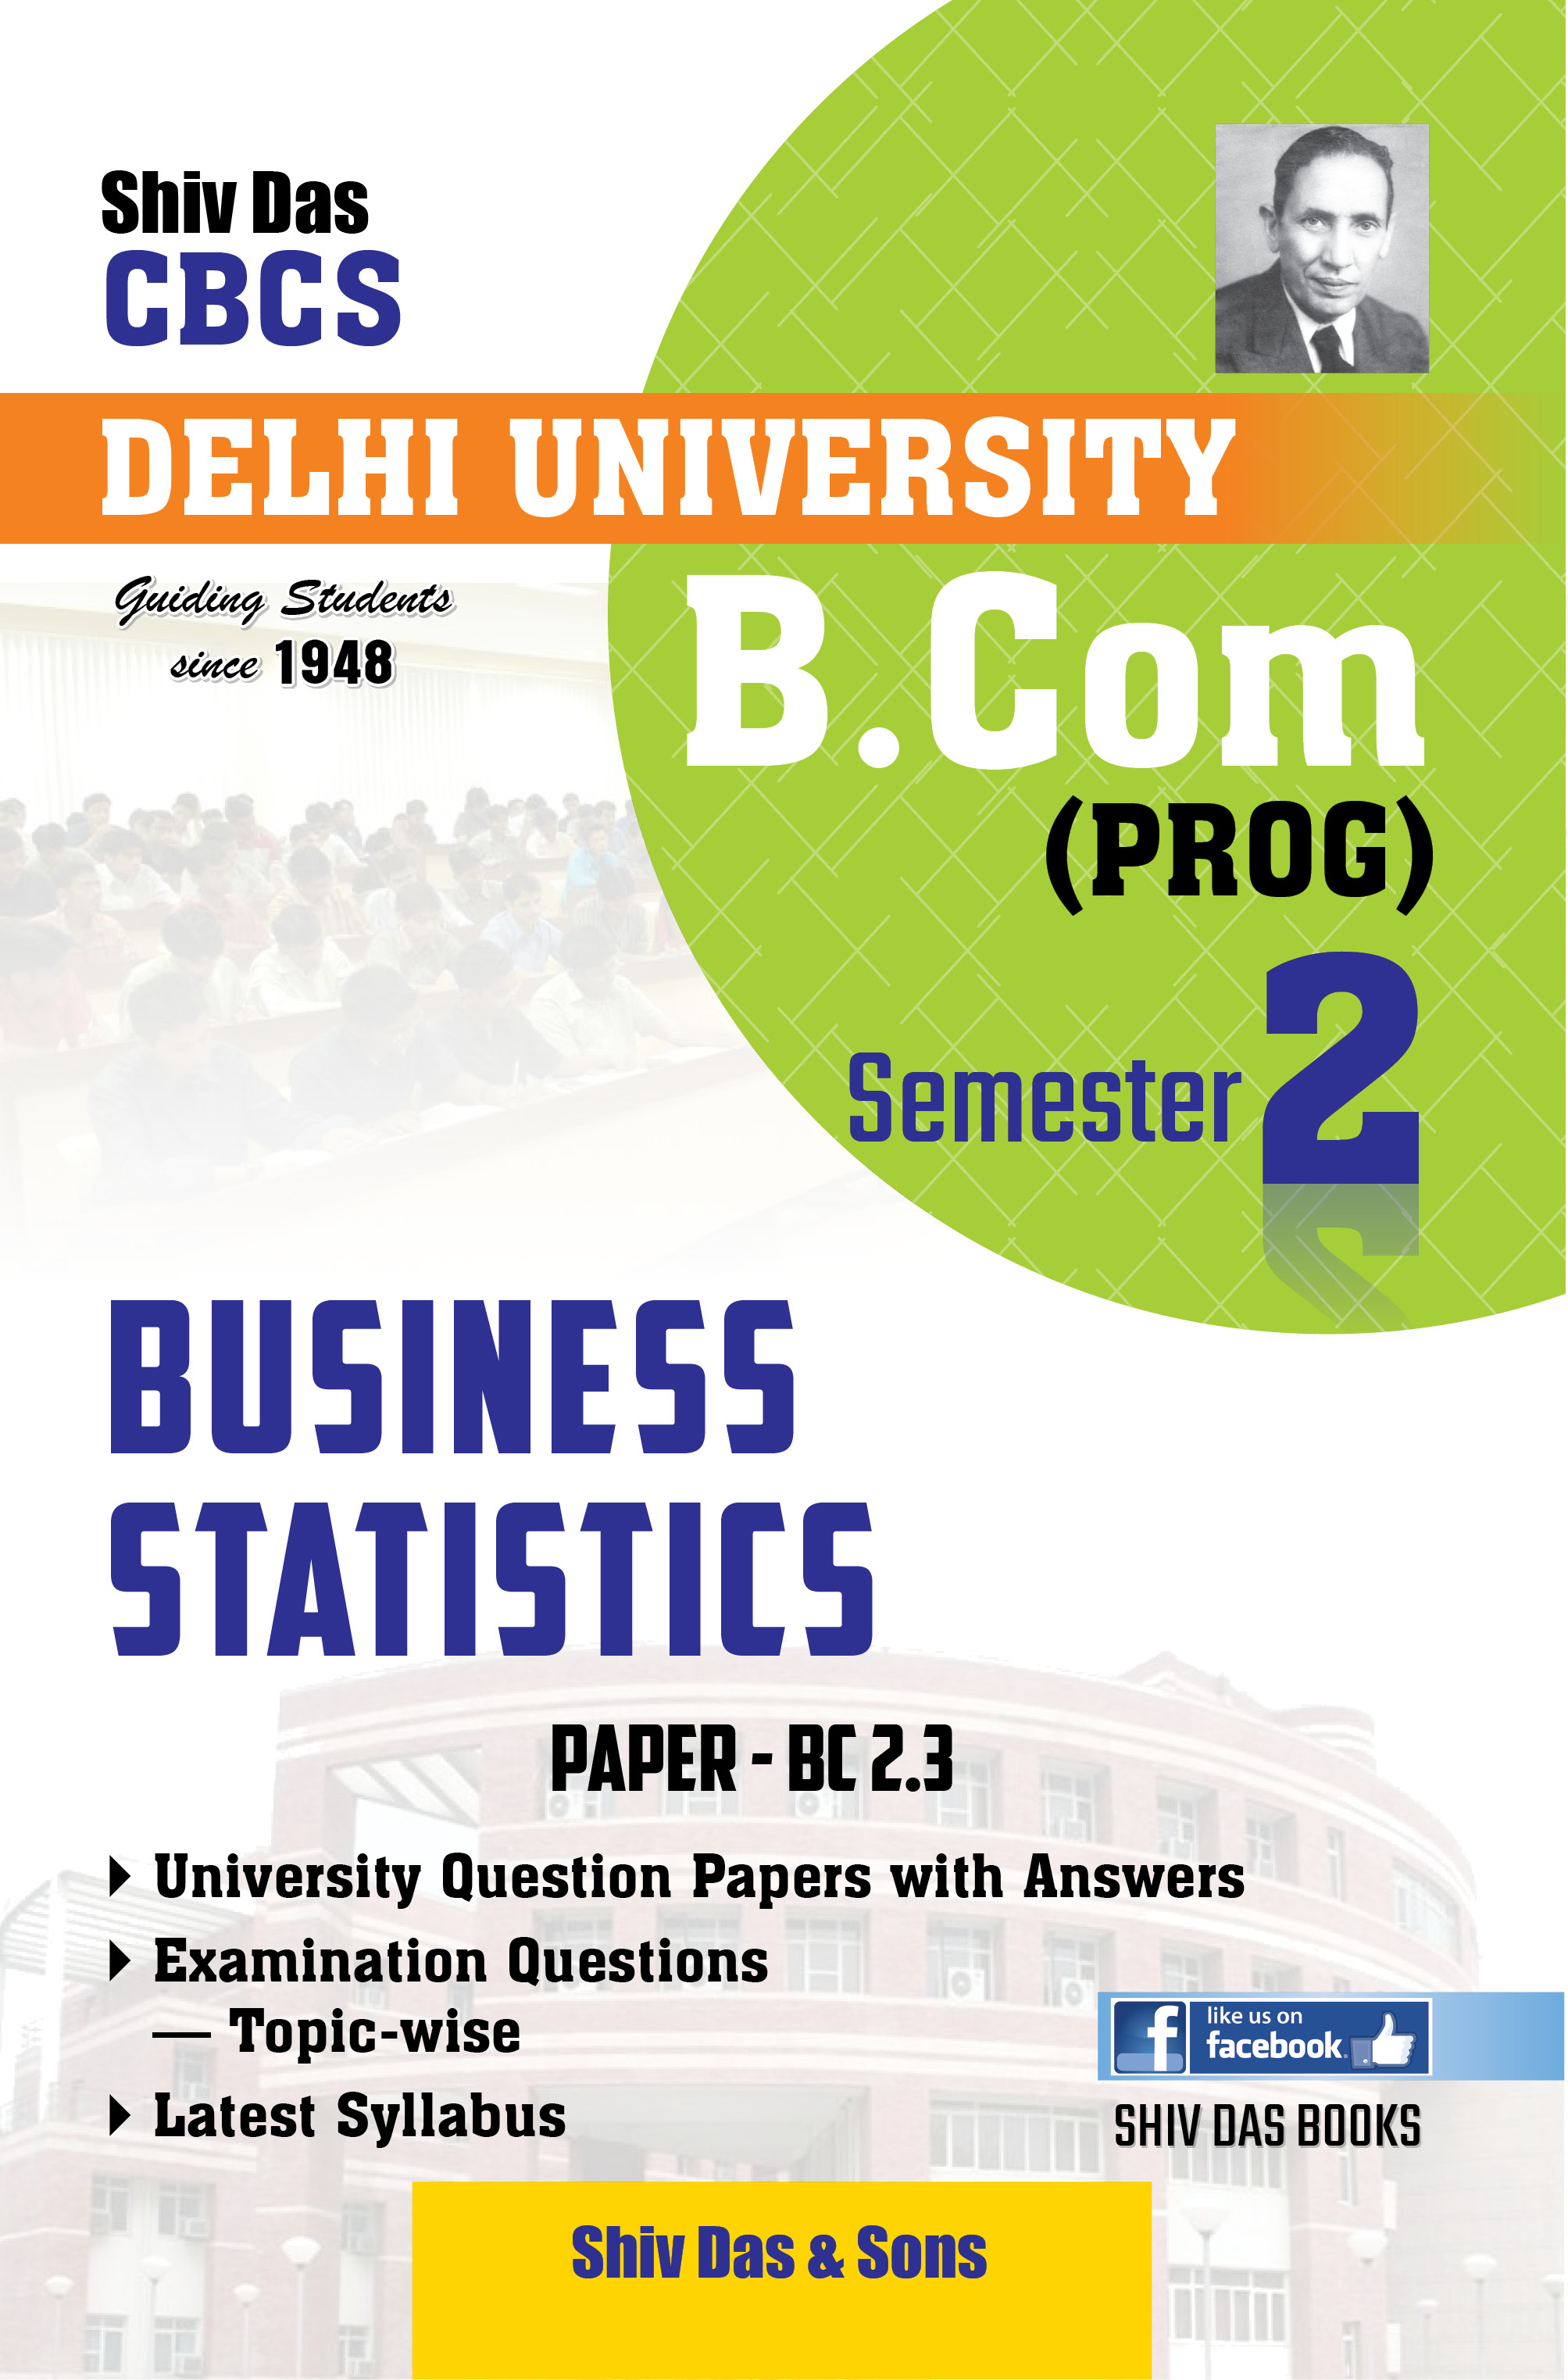 Business Statics (Eng. Medium) for B.Com 1st Year SOL/External